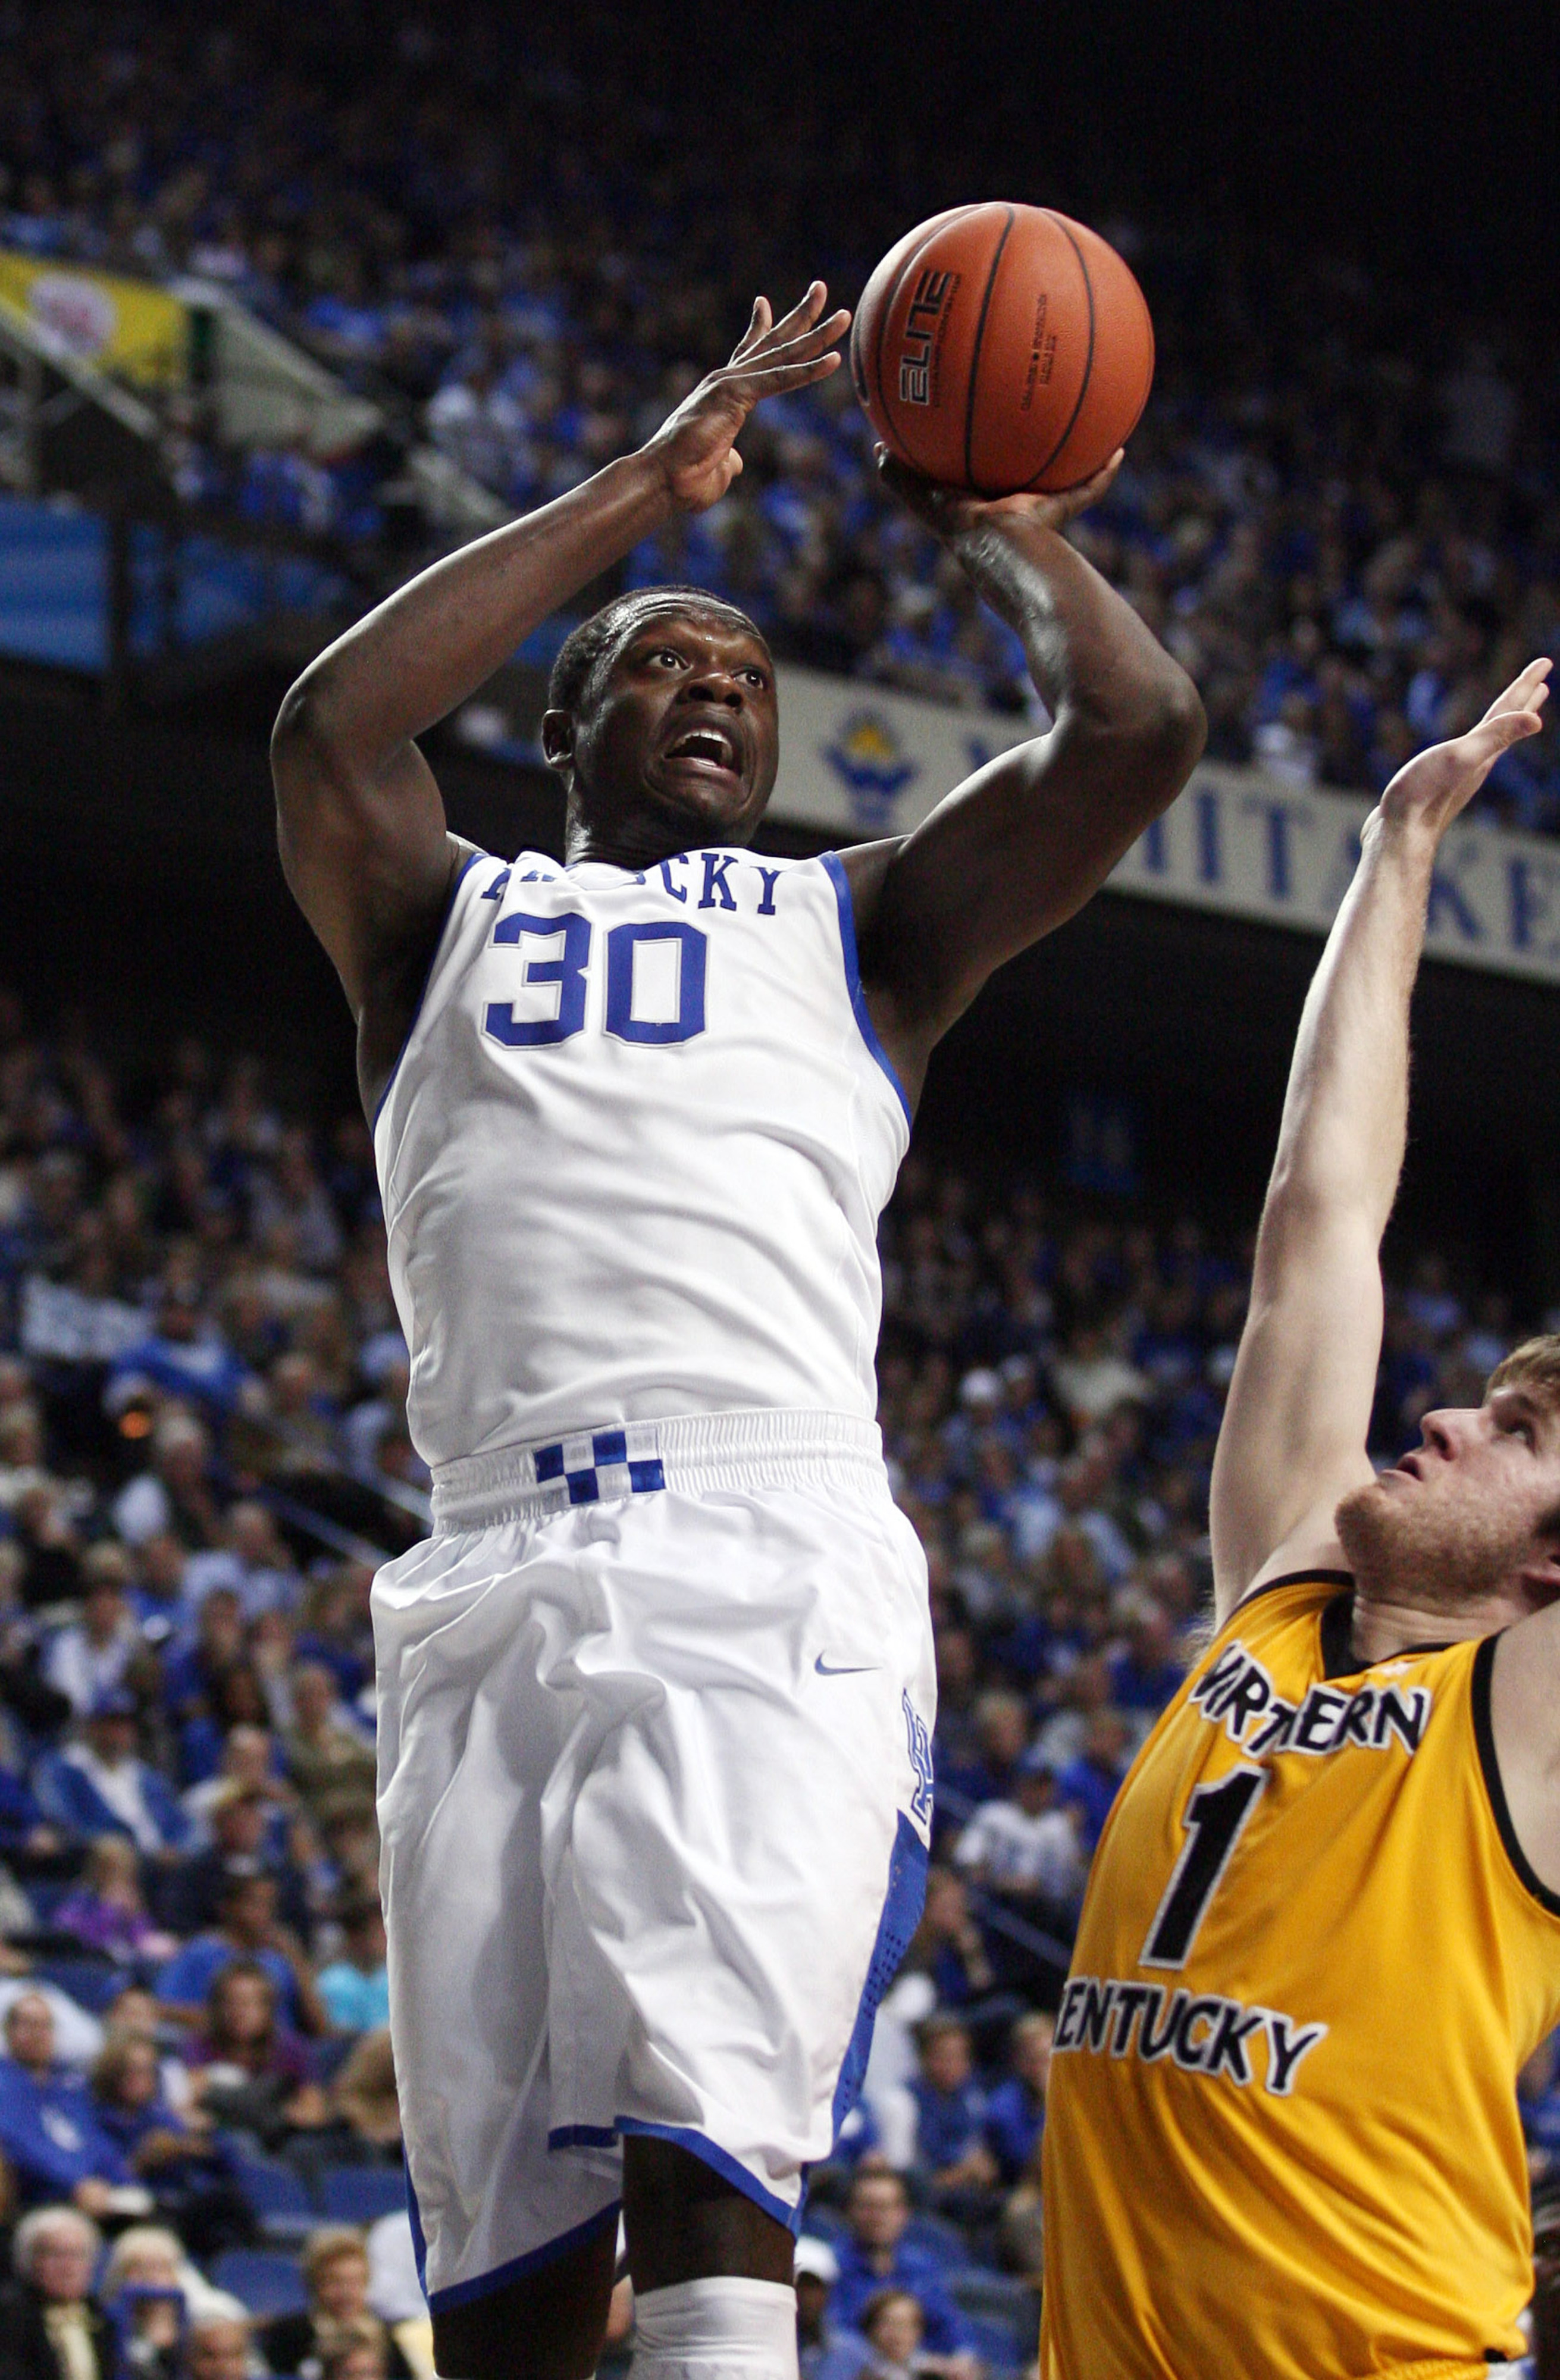 If I am picking my own troops, man by man, and I know I am going to war, I pick Julius Randle and I never look back...You can quote me on that.